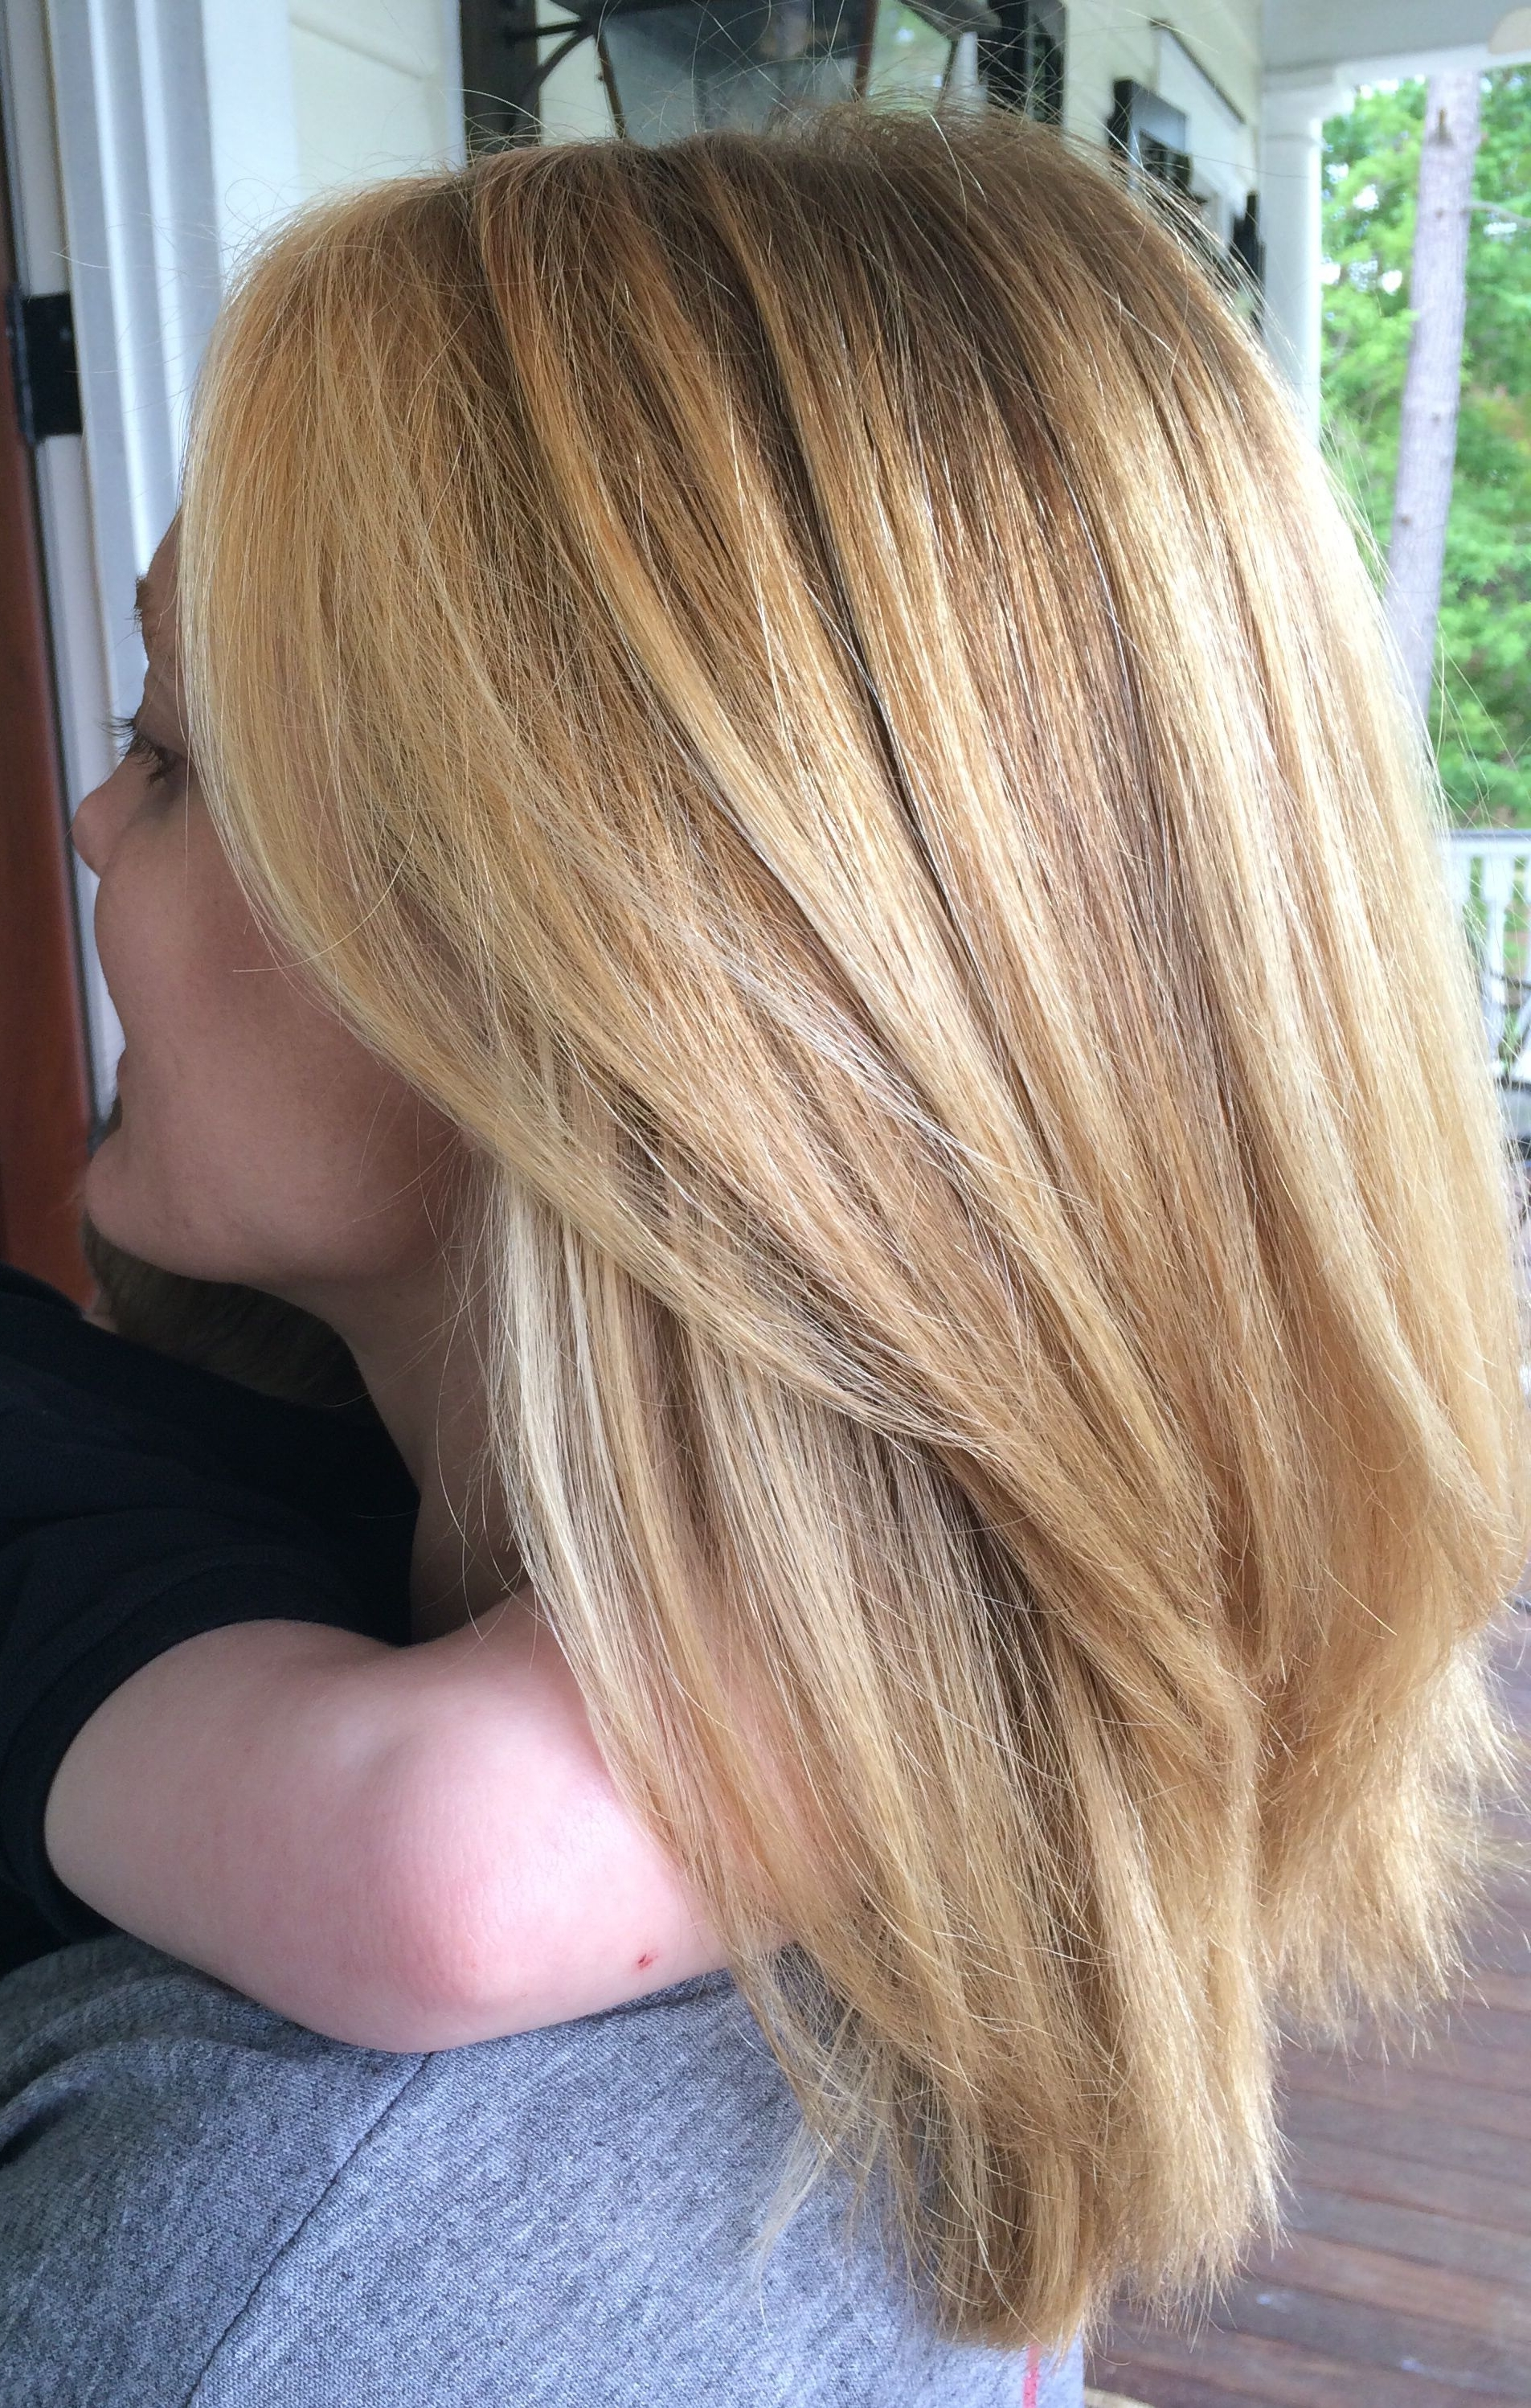 Well Known Golden Blonde Balayage Hairstyles Within Mid Length Blonde Hair / Balayage / Golden Blonde / (View 18 of 20)